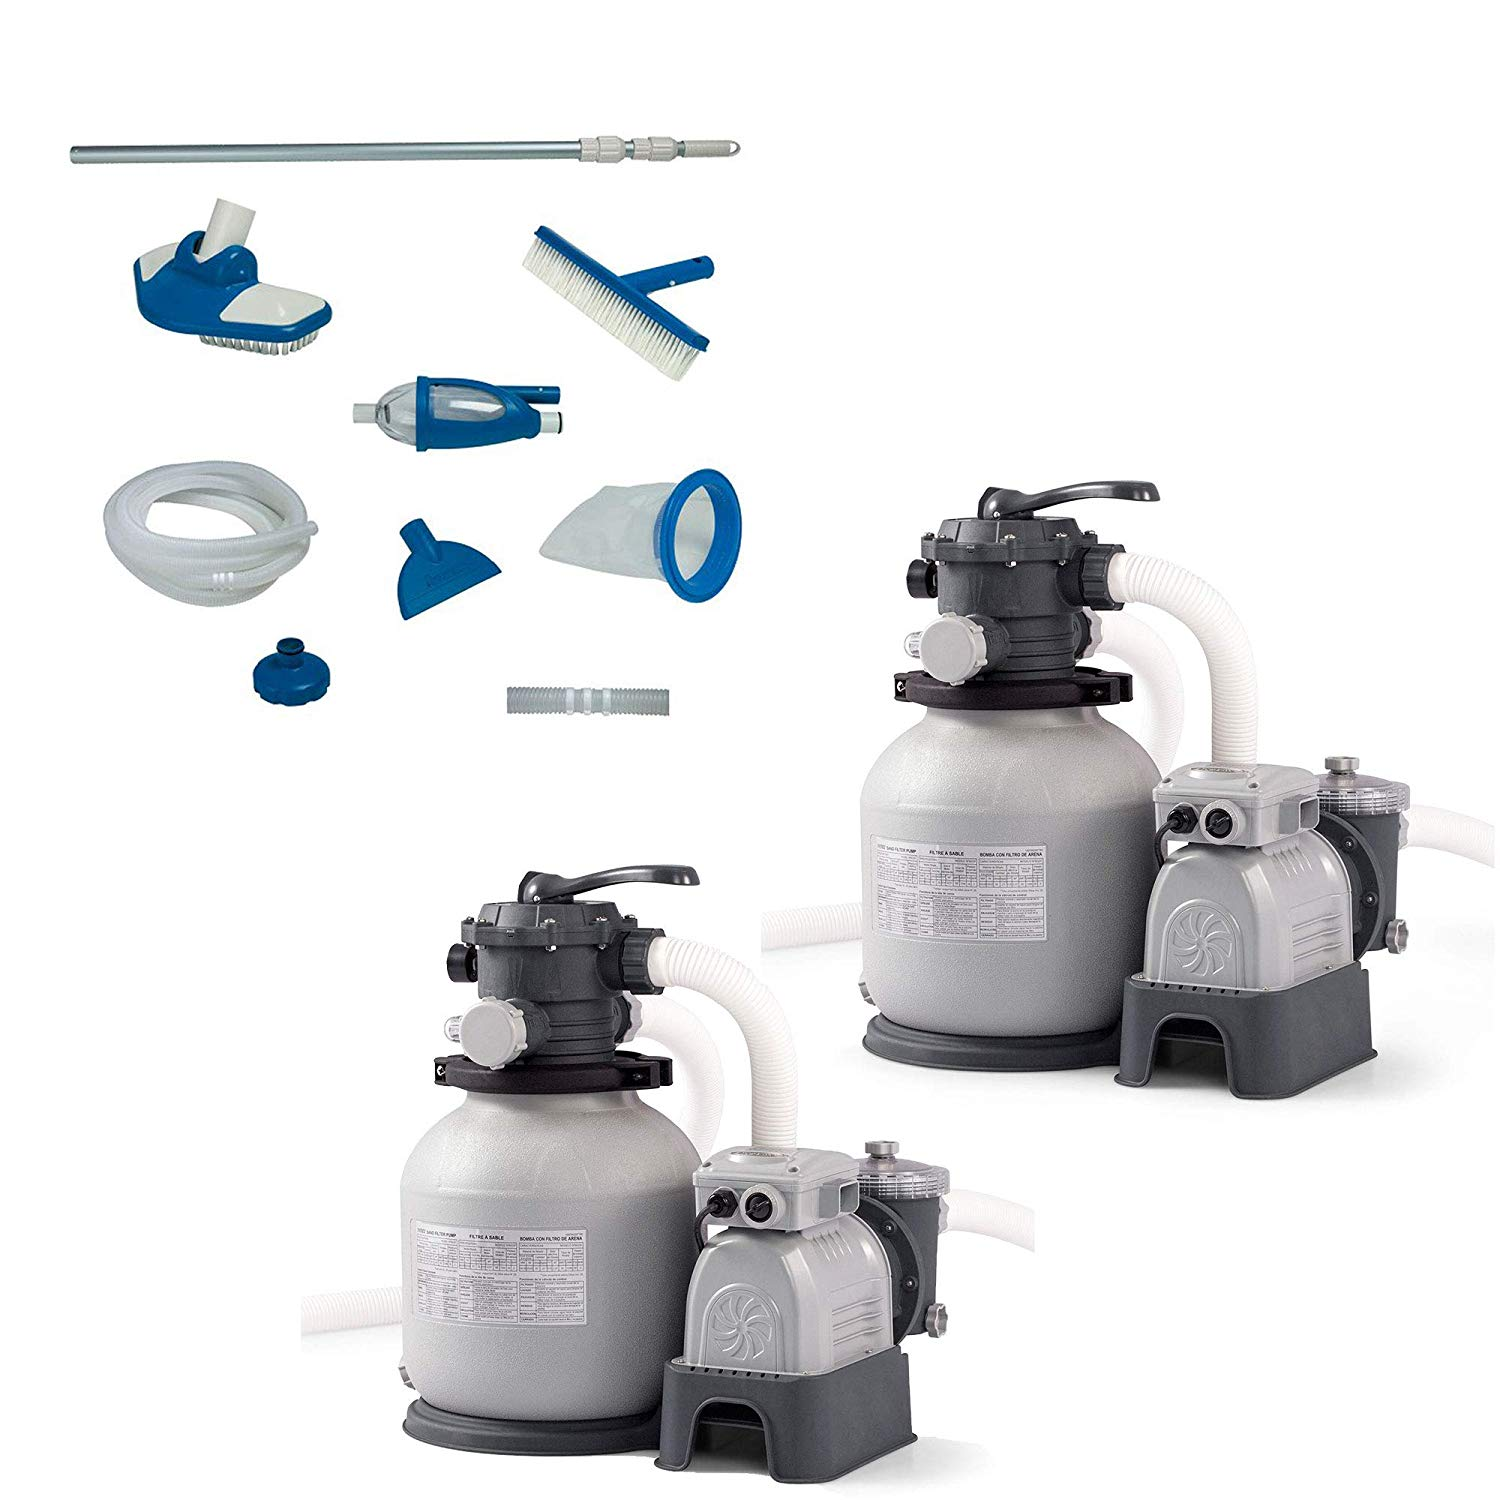 Intex Deluxe Pool Maintenance Kit w/Vacuum & Pole w/Sand Filter Pump (2 Pack)